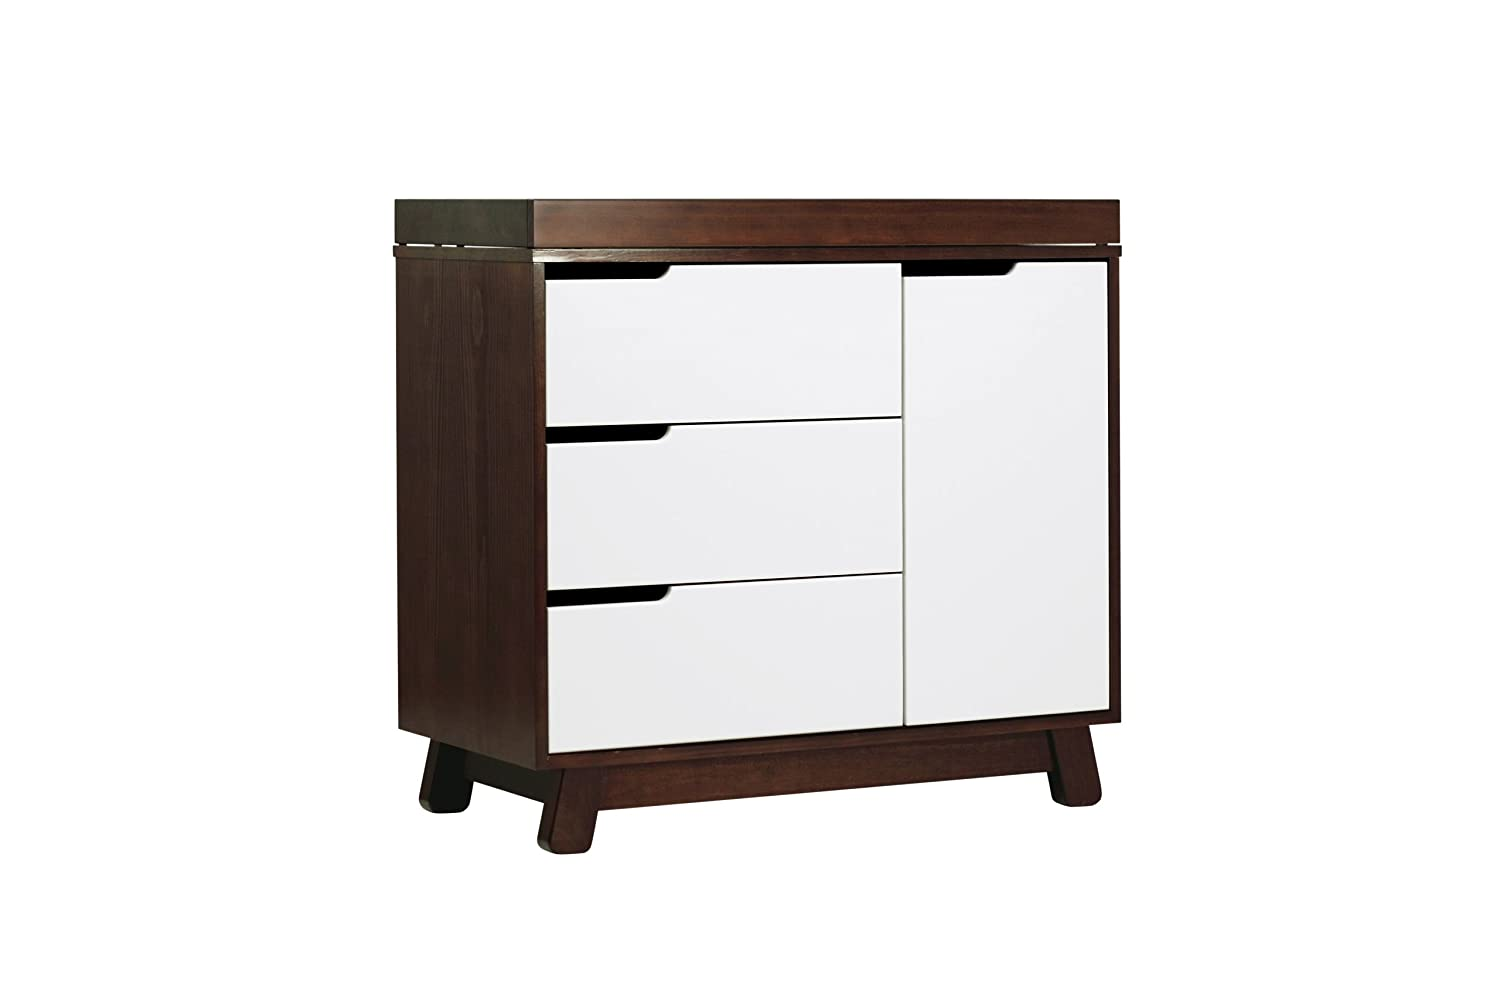 Amazon.com : Babyletto Hudson 3 Drawer Changer Dresser With Removable  Changing Tray, Espresso / White : Nursery Dressers : Baby